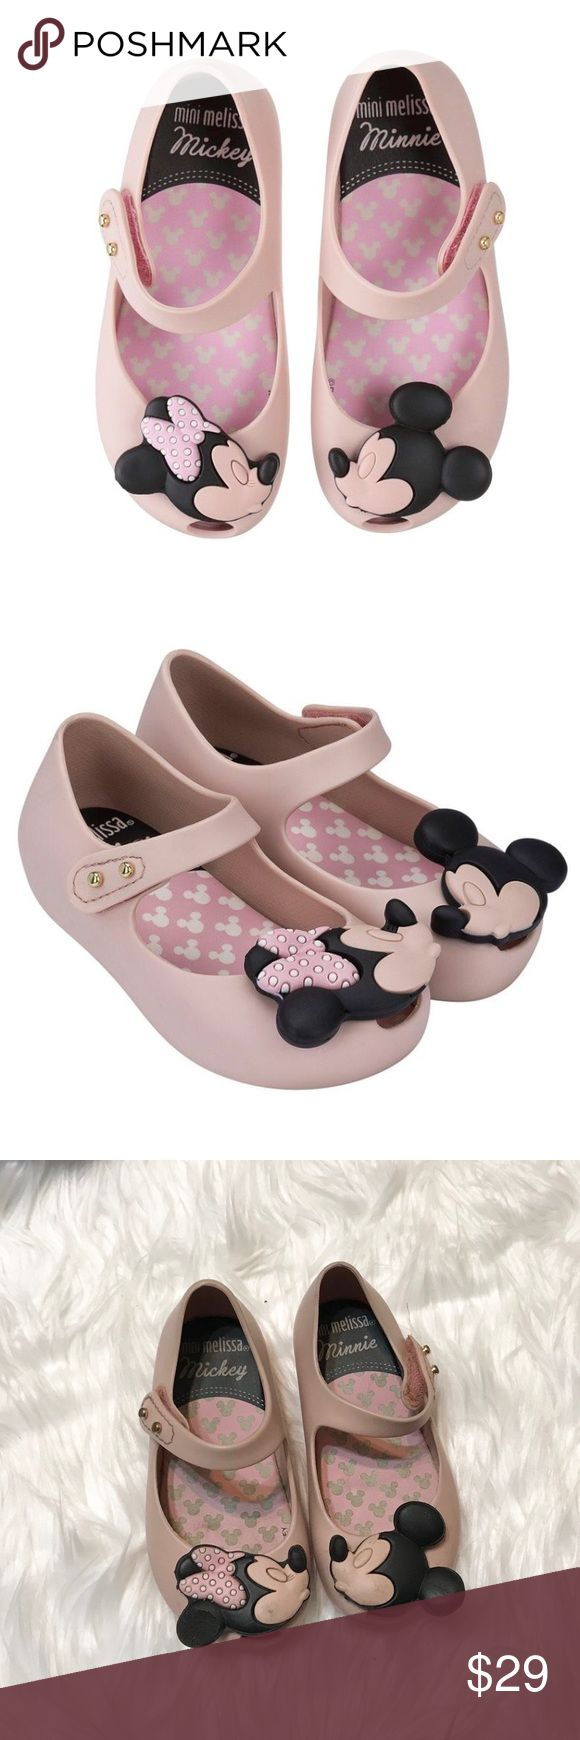 Mini Melissa Ultragirl Disney Twins Light Pink Ultragirl Disney Twins Mary Jane Jelly Flat (Toddler size 7) in Light Pink. These are in Used condition, they were worn a lot & you can see my daughter bit a part of the Minnie Mouse ear. Some dark marks also so please be aware of the flaws. Minnie & Mickey Mouse kissing detail. Made in brazil, 100 percent recyclable plastic. Mary Jane fashioned from waterproof & fruit-scented PVC, while an adjustable hook-and-loop strap allows for easy on…